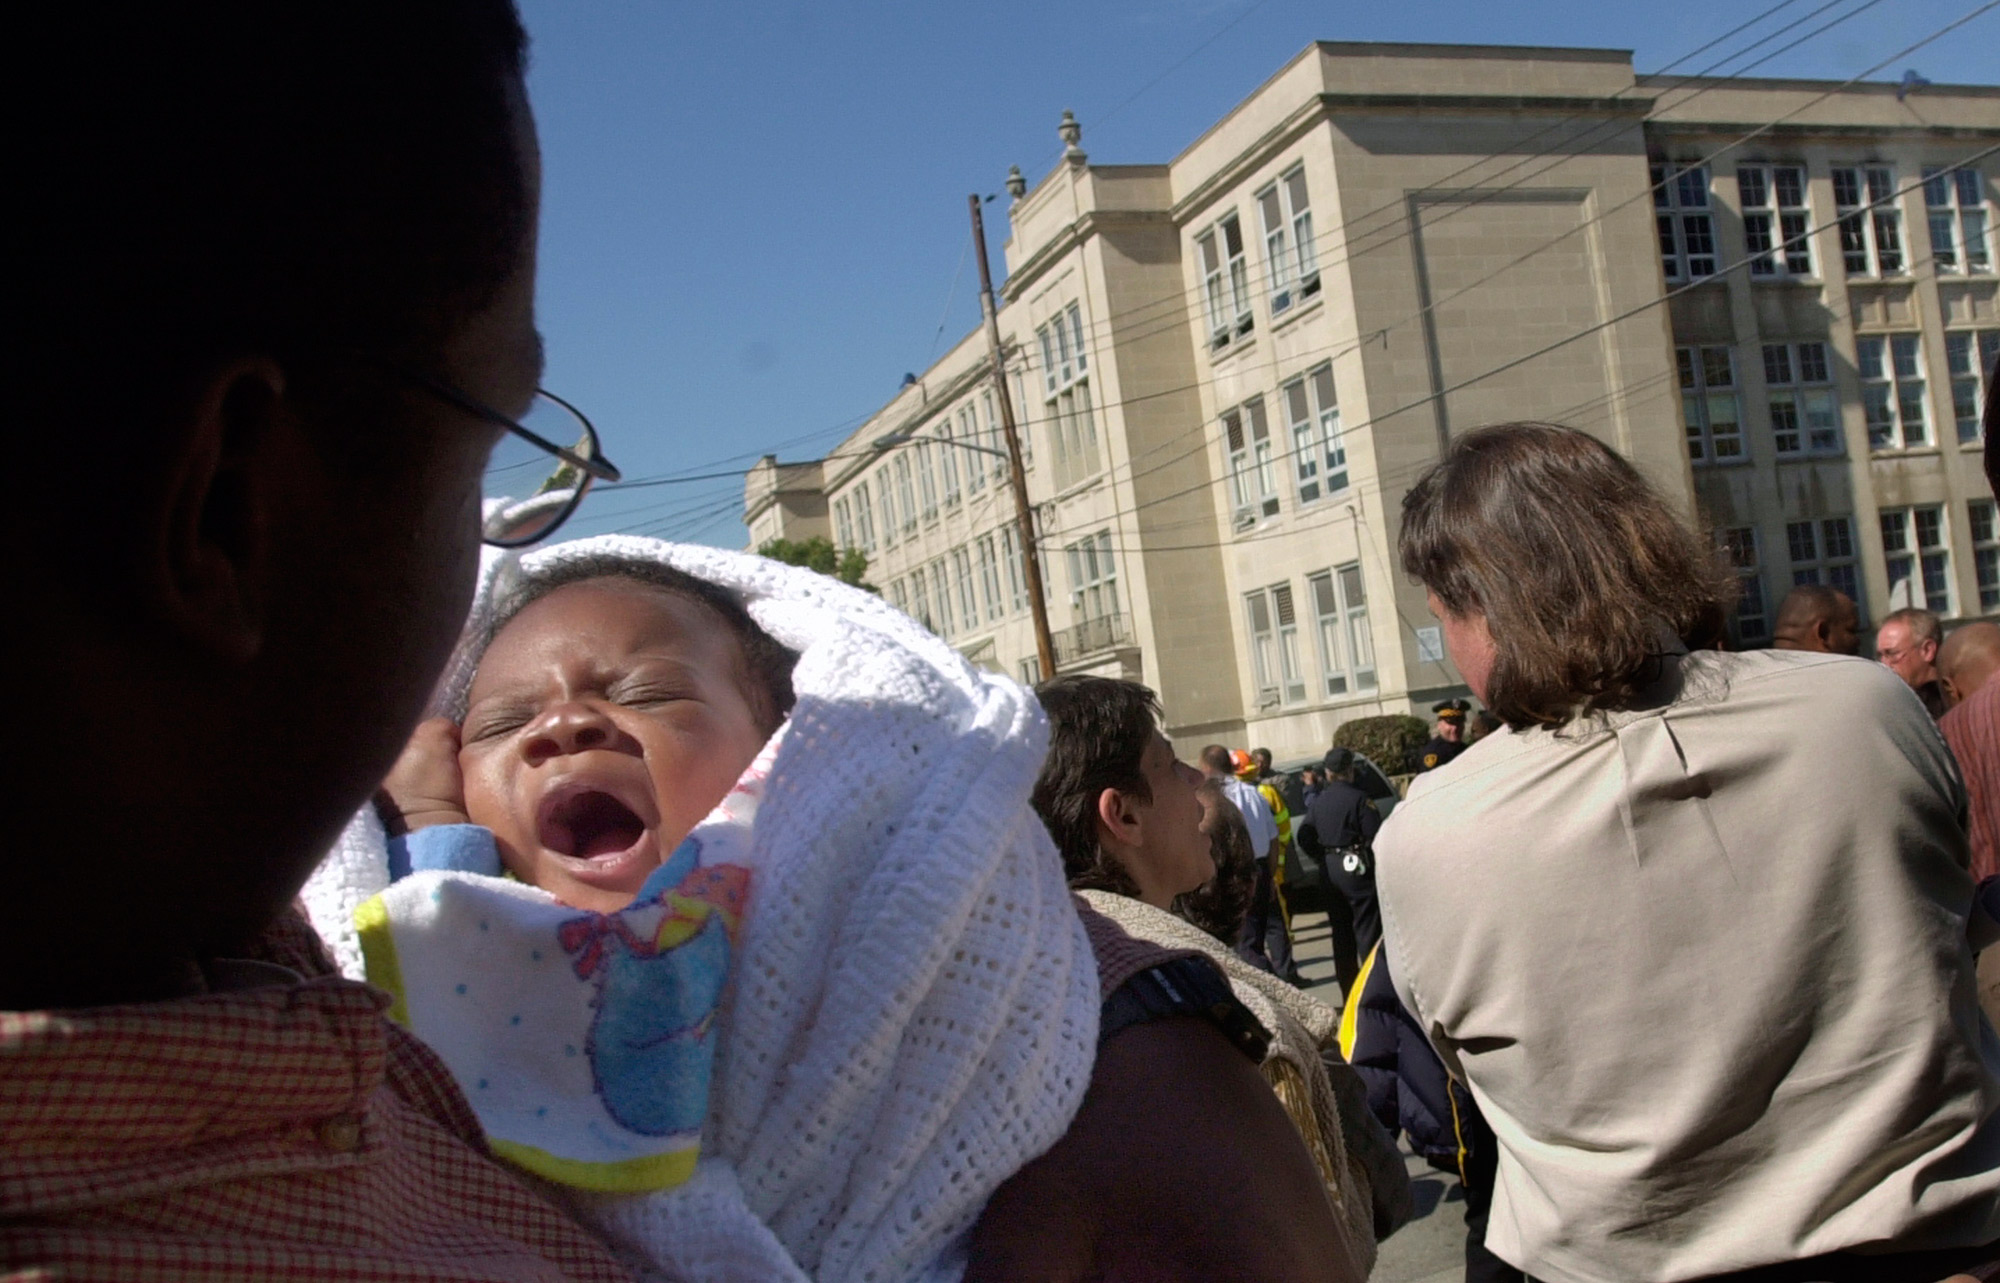 Jamar Foulks holds his seven-week-old son Jamar Jr., who was waking from a nap outside Westinghouse High School.